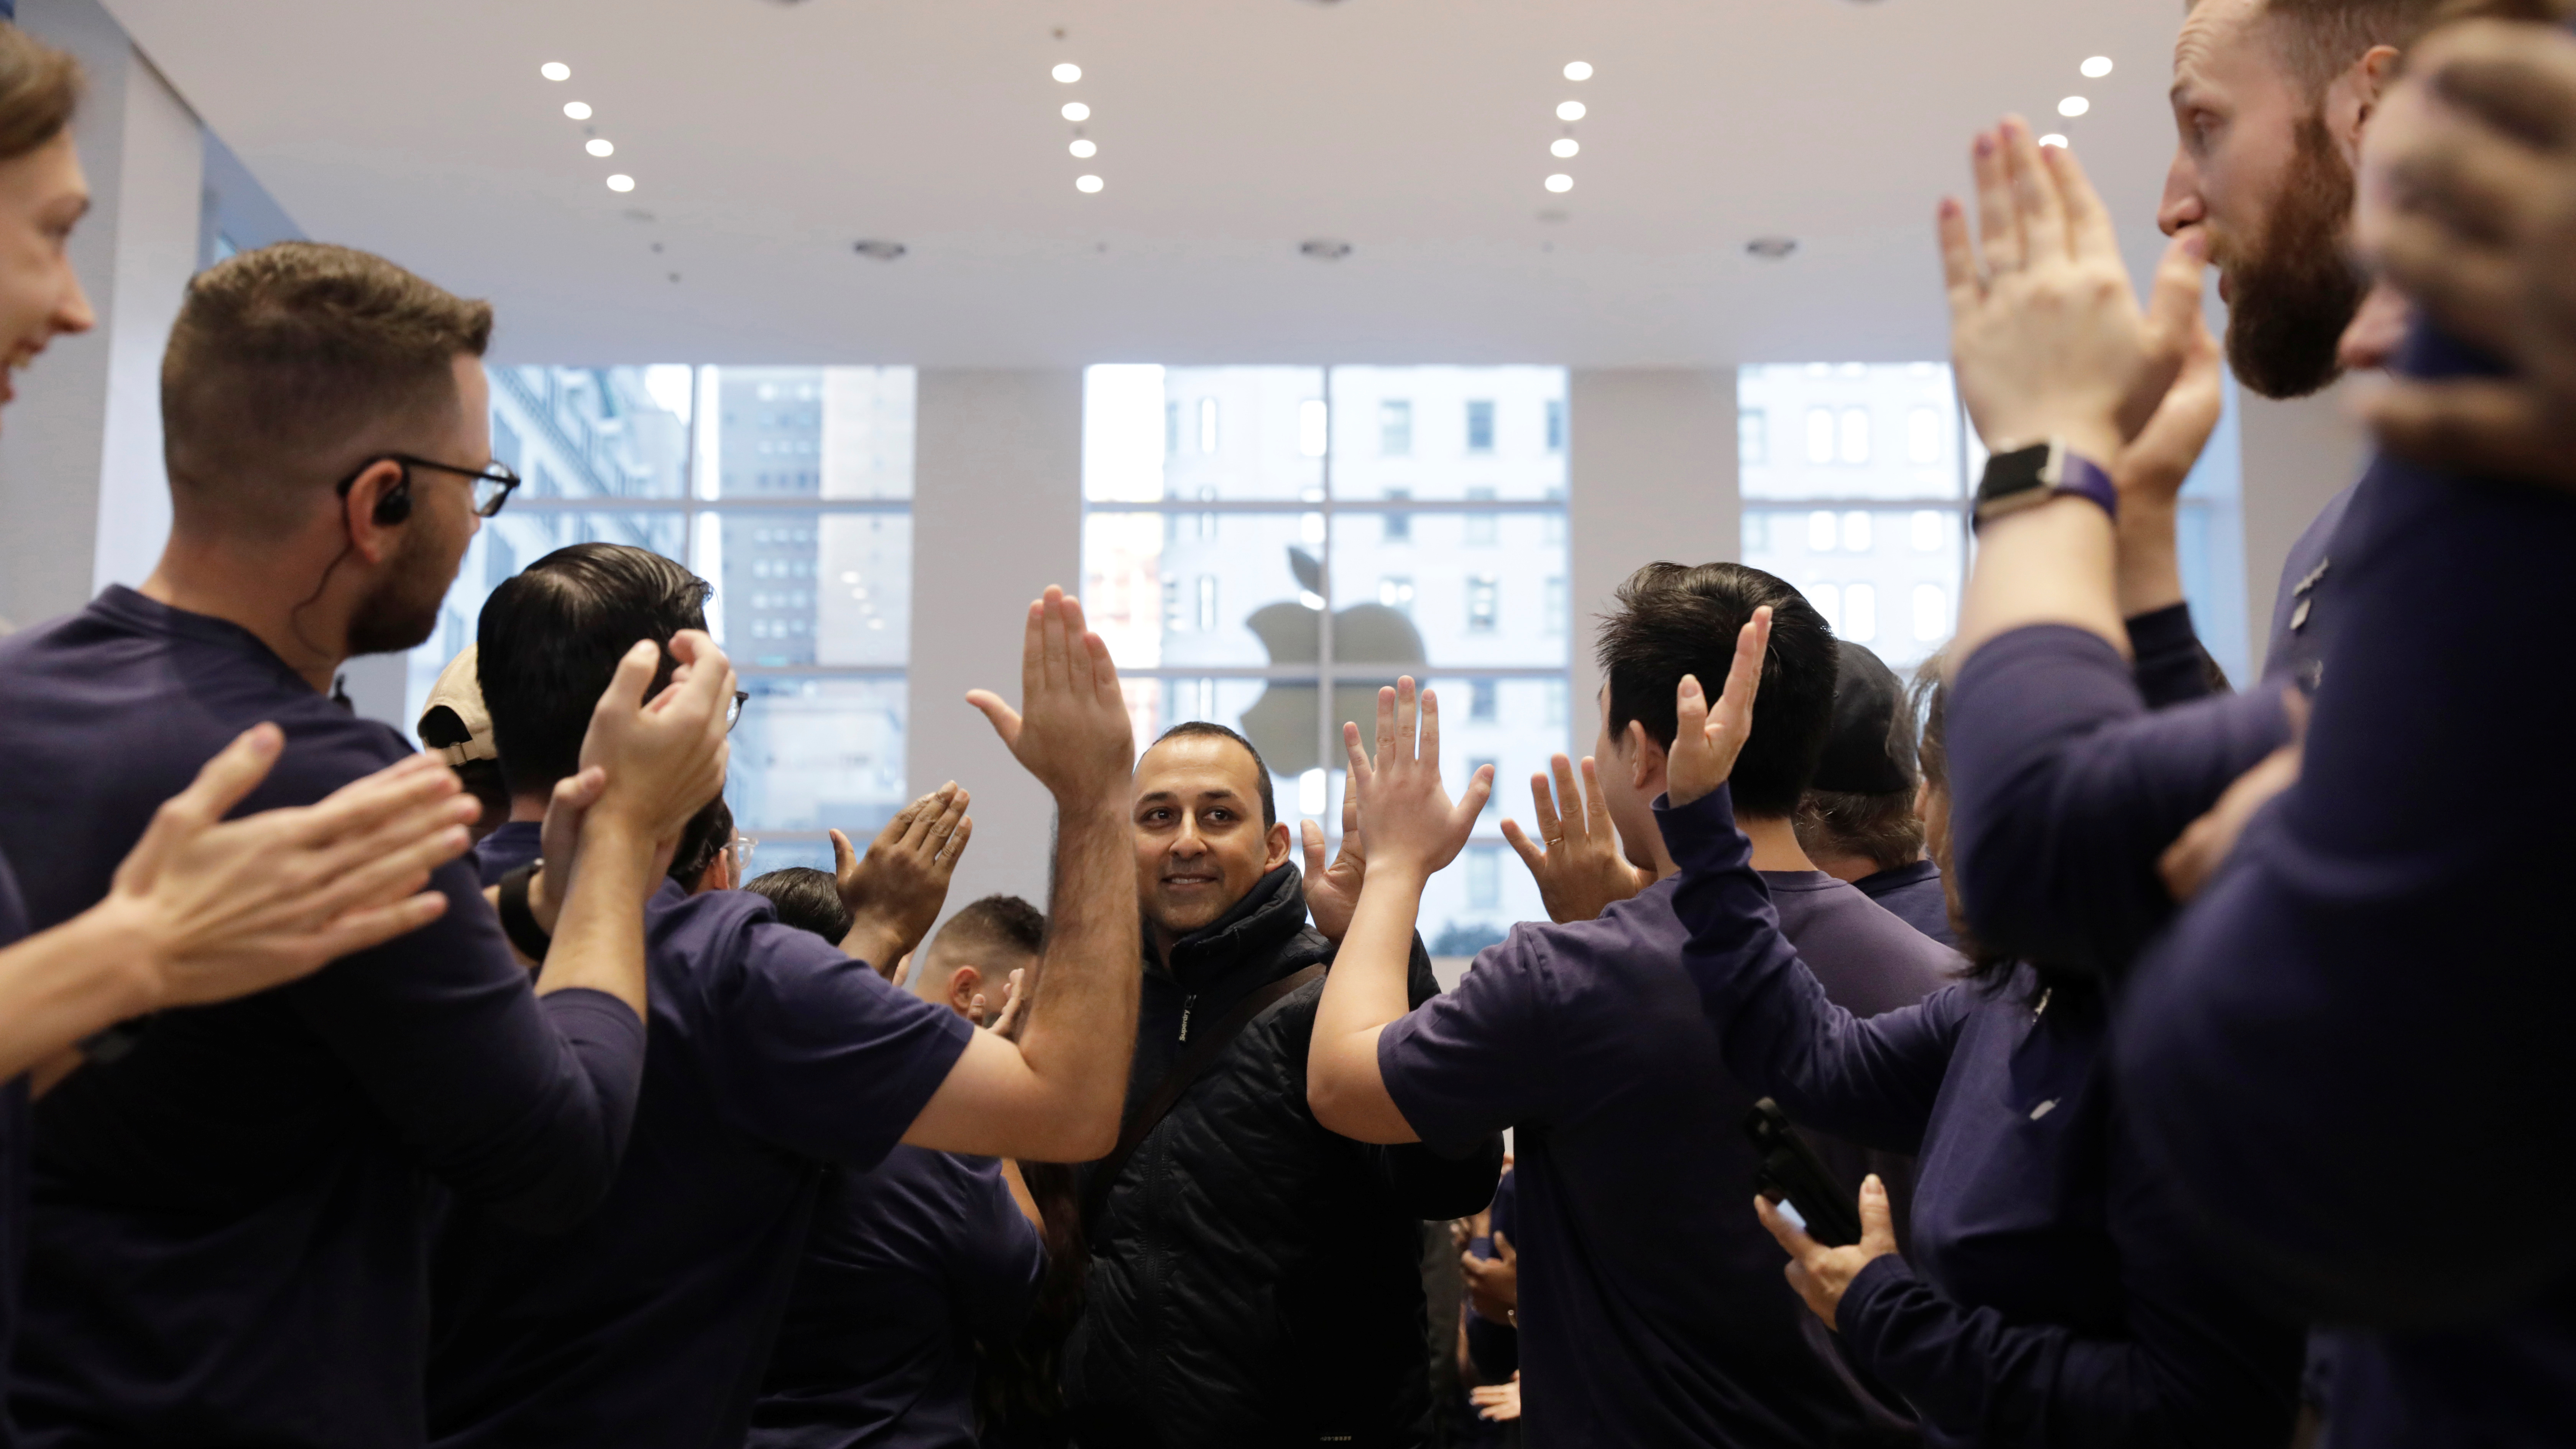 A customer is greeted by Apple employees as he enters an Apple store to purchase an iPhone X in New York, U.S., November 3, 2017.  REUTERS/Lucas Jackson - RC1CB0BE5FD0